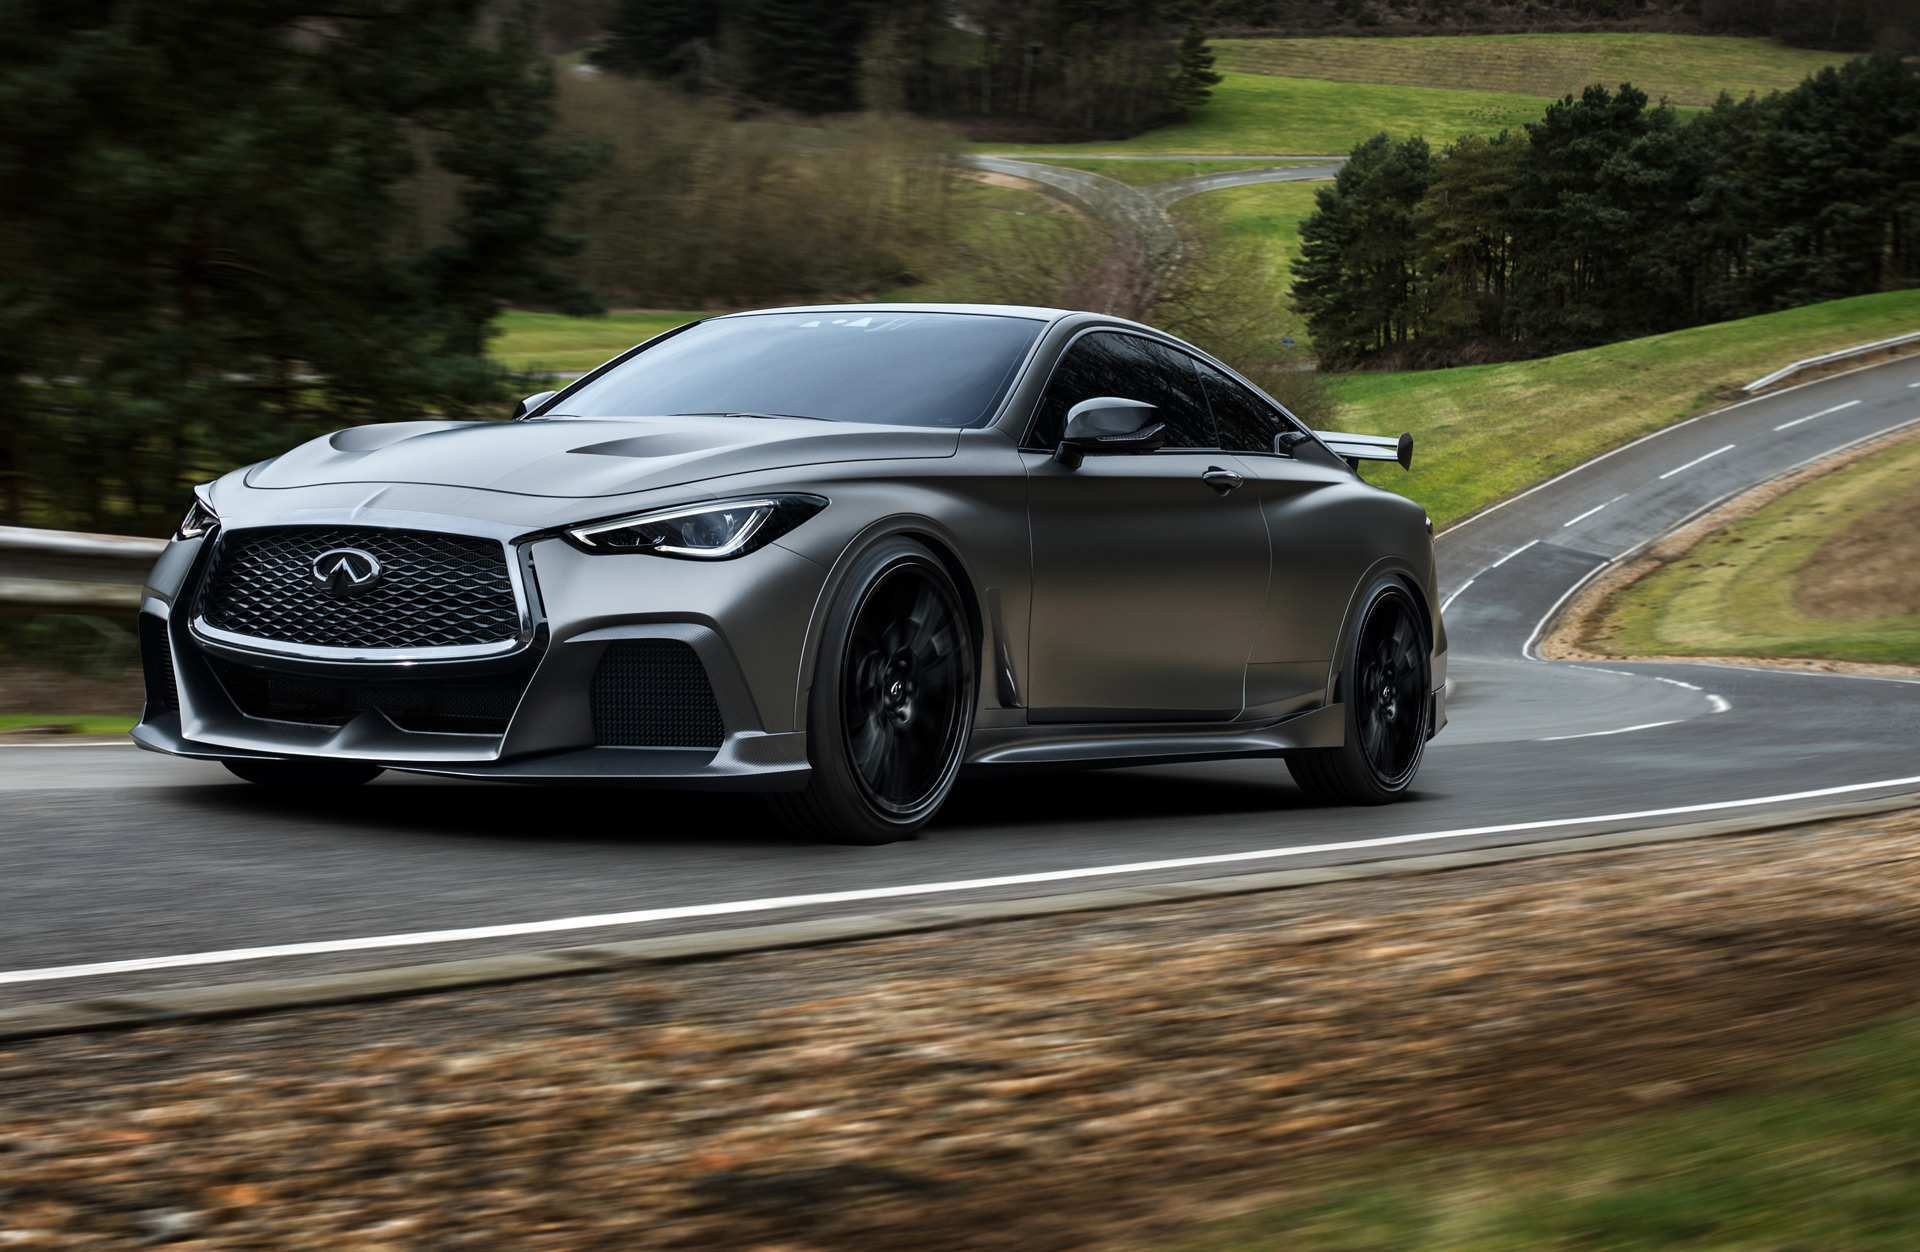 84 The 2020 Infiniti Q50 Coupe Eau Rouge Wallpaper